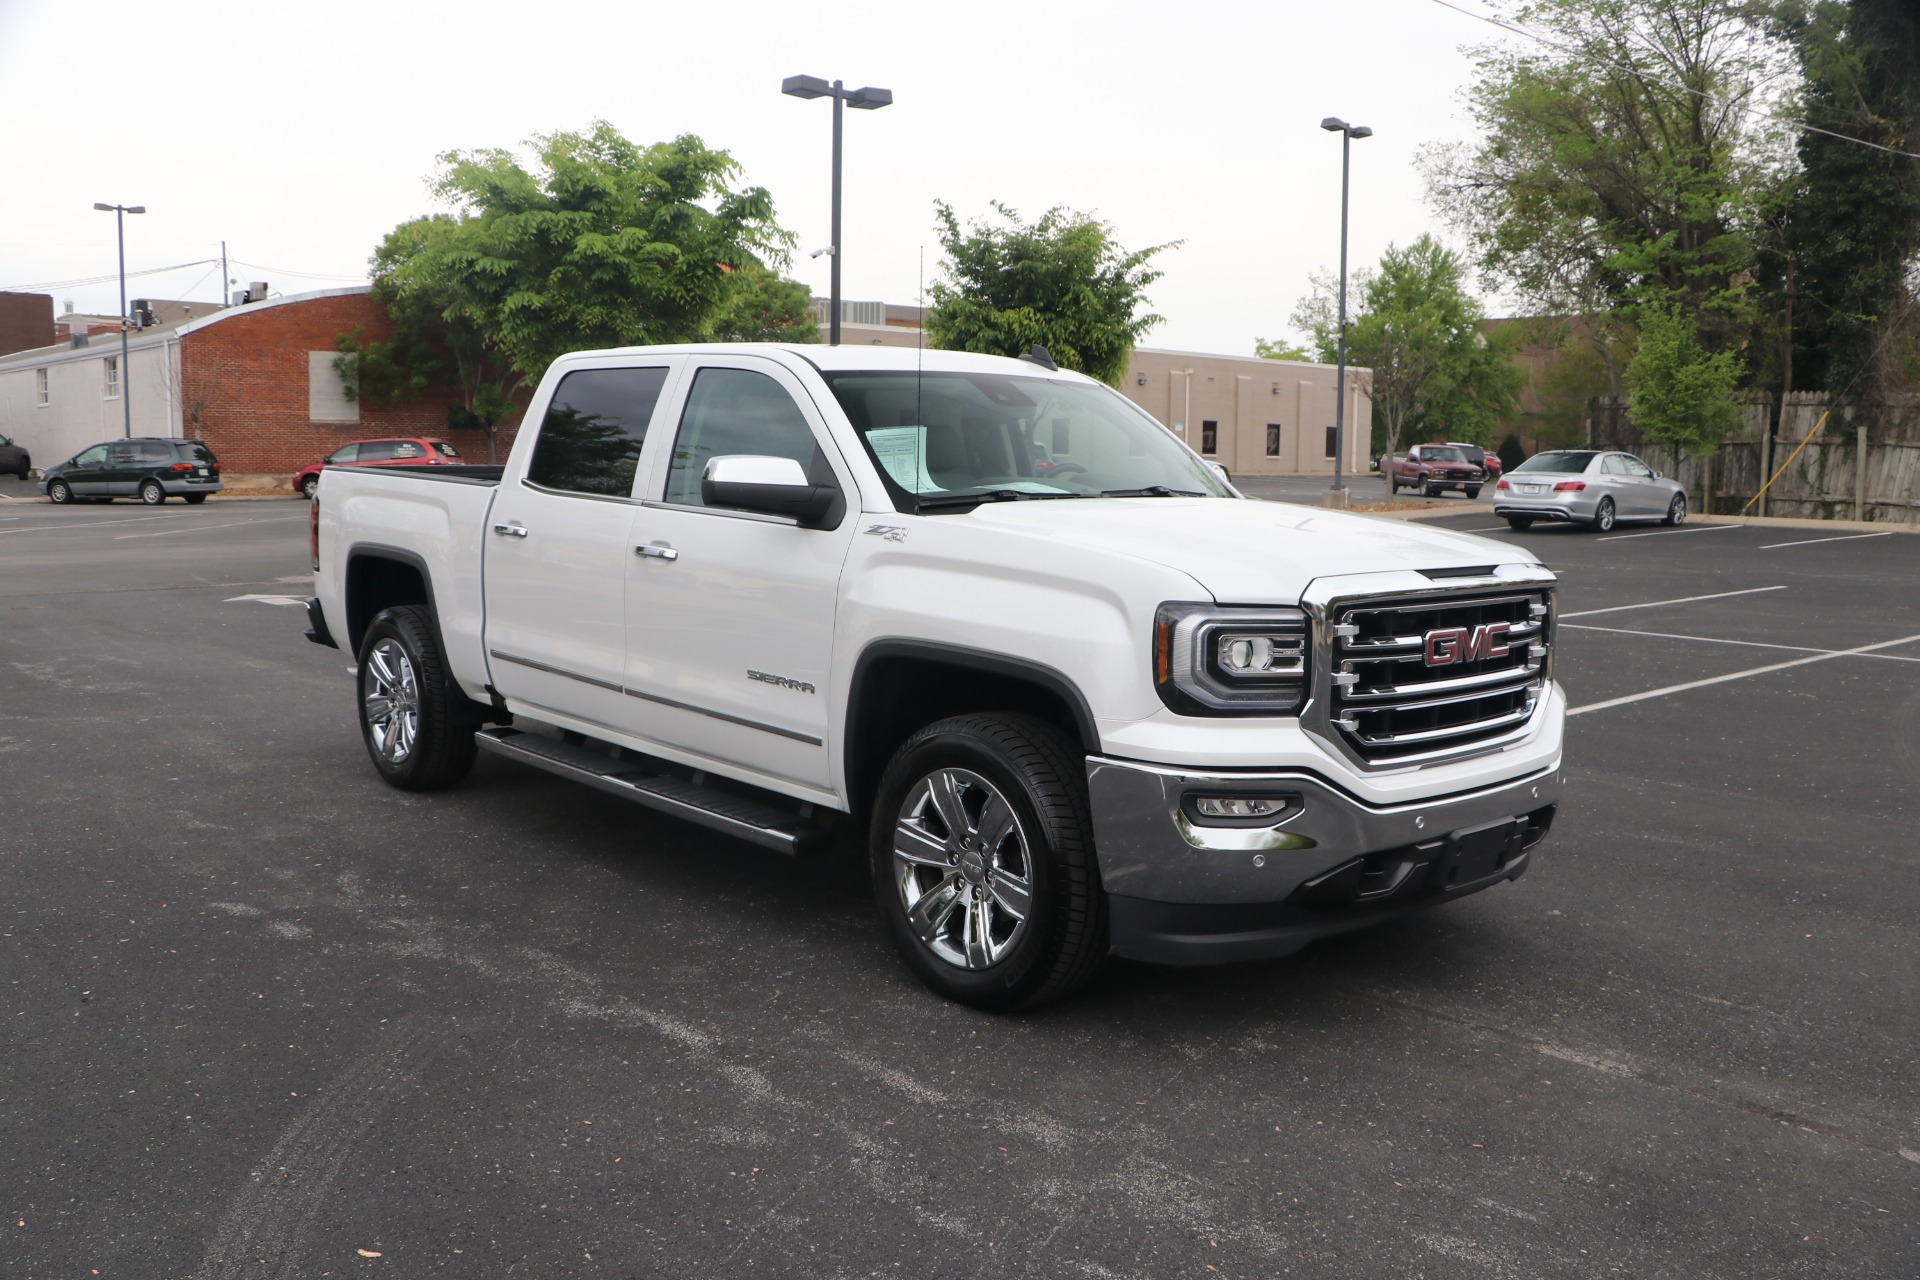 Used 2016 GMC Sierra 1500 SLT 4WD CREW CAB W/NAV for sale Sold at Auto Collection in Murfreesboro TN 37130 1